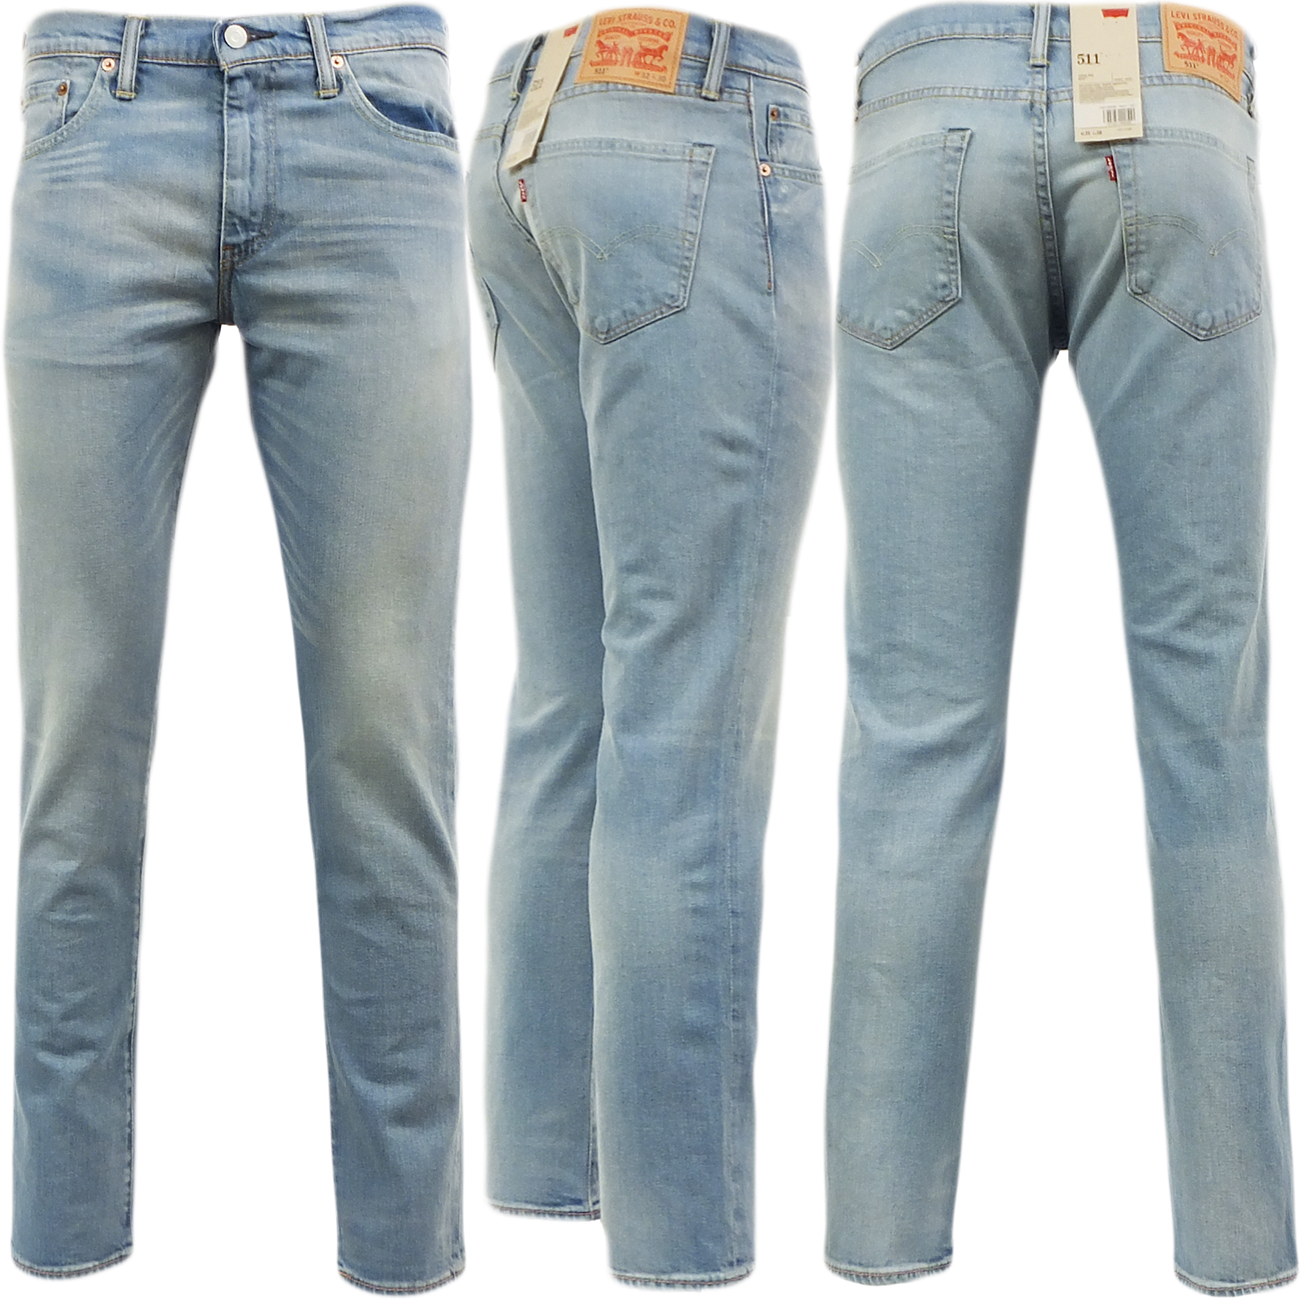 Mens Levi 511 Slim Fit Jean Aber Light Blue 30 32 34 36 38 | eBay